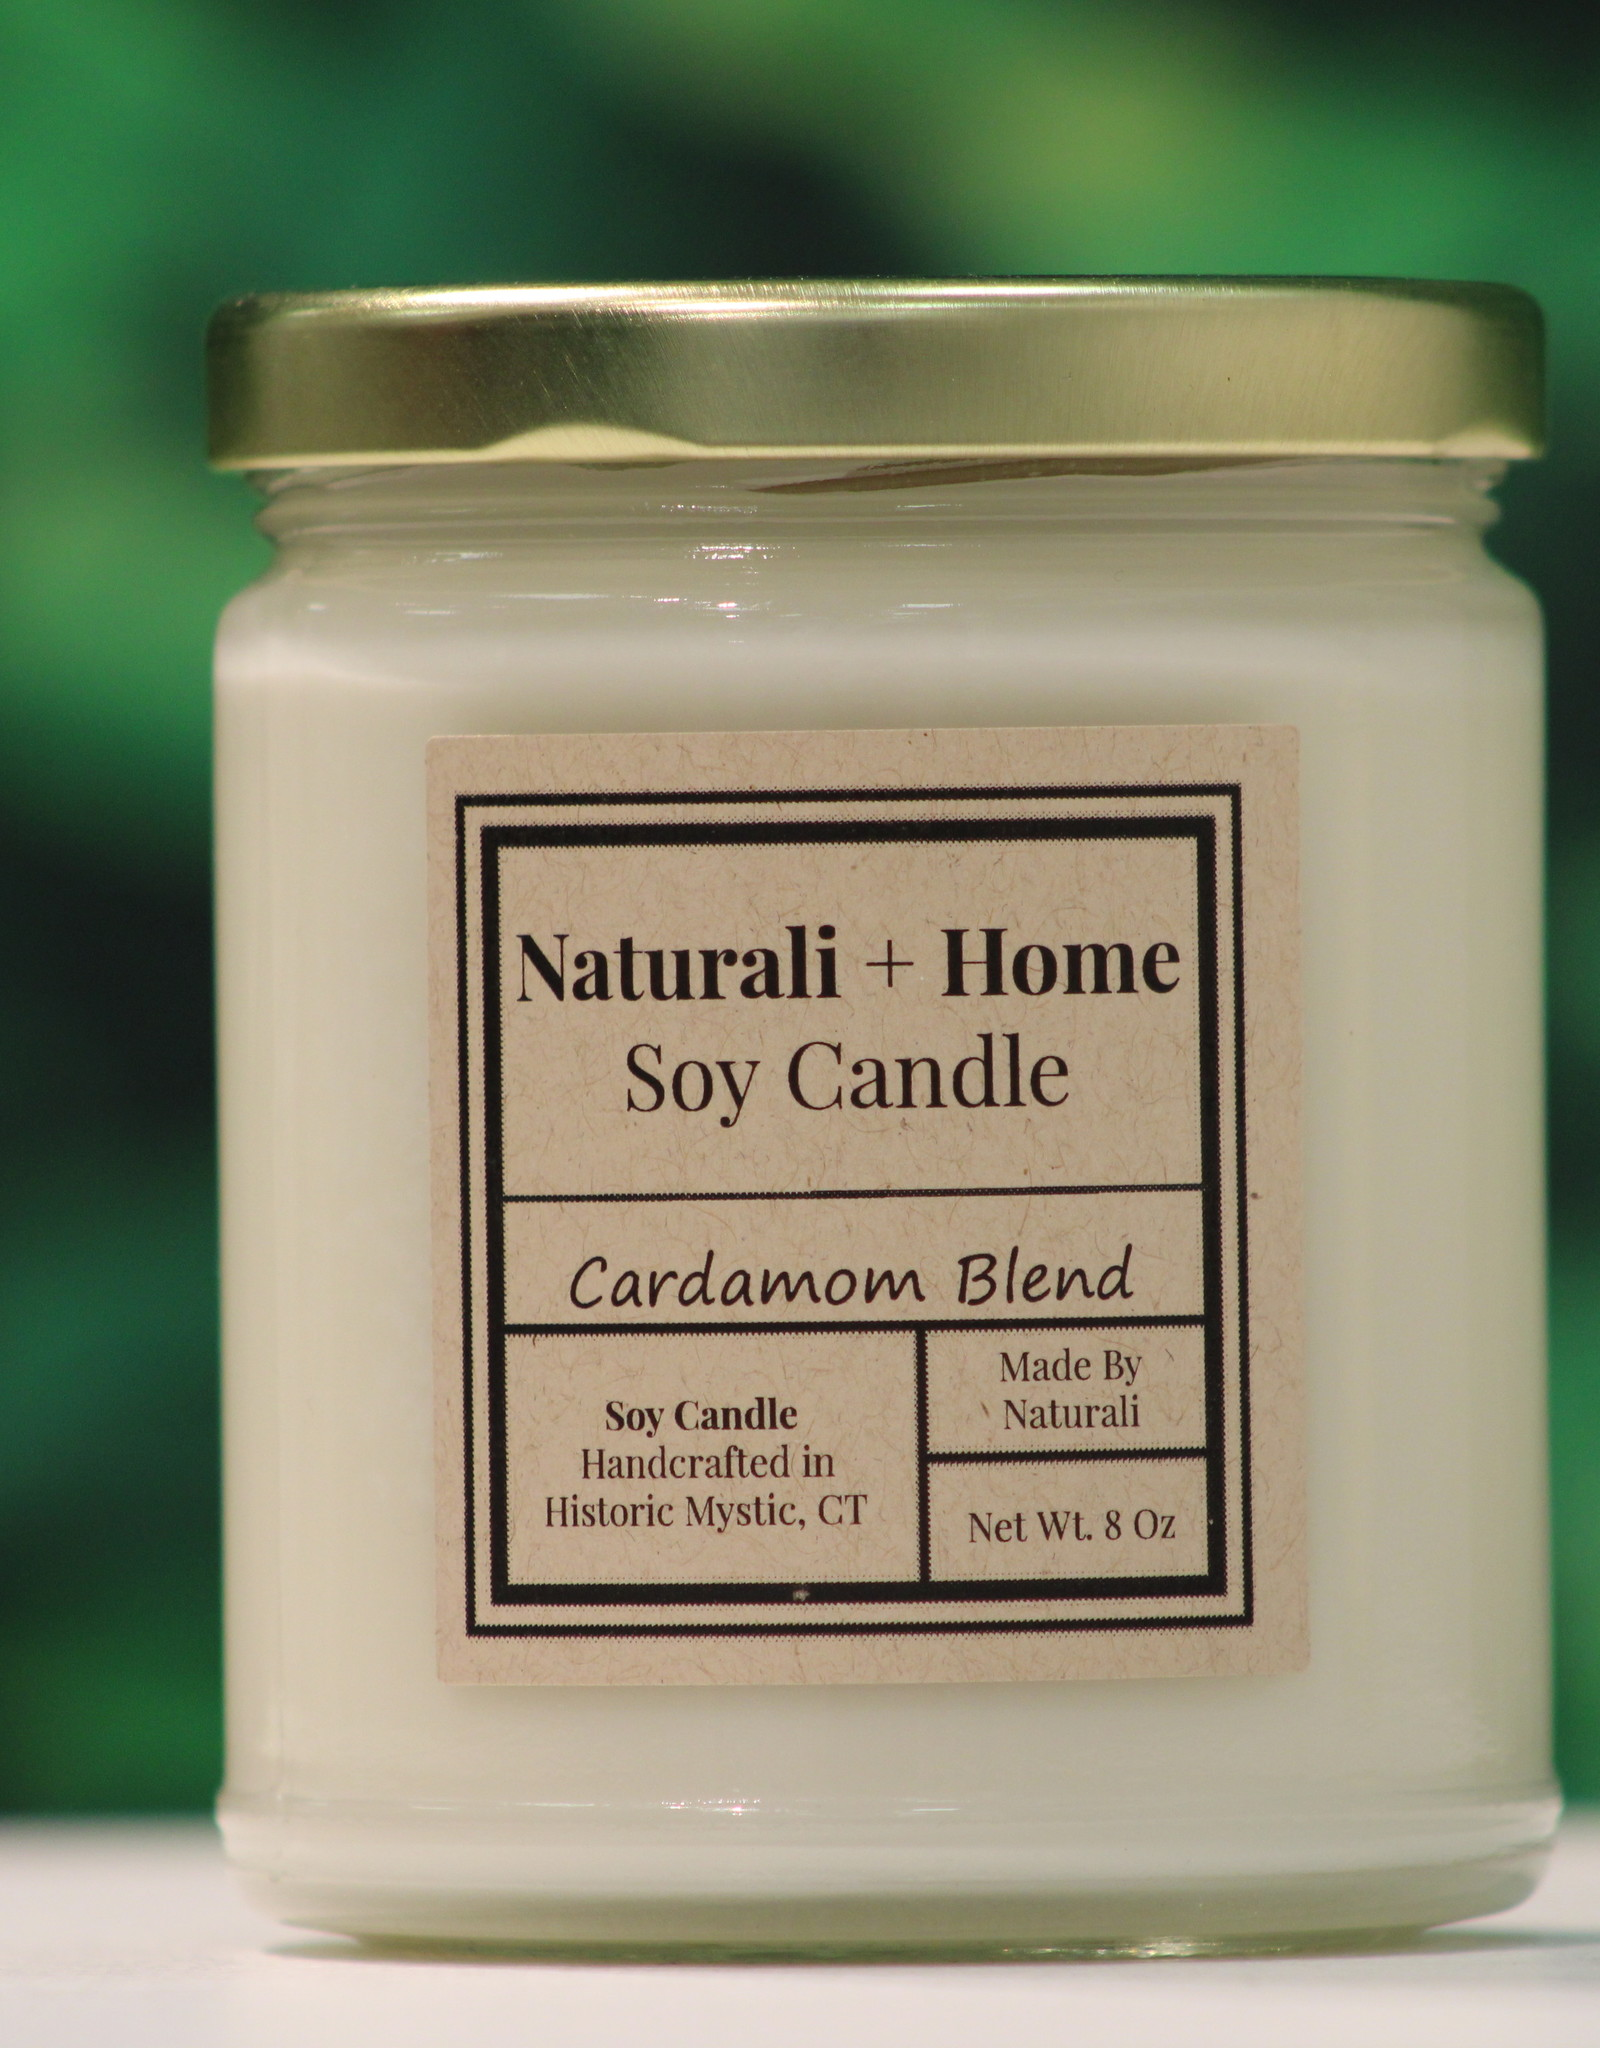 Naturali Home Cardamom Blend Soy Candle (8oz)